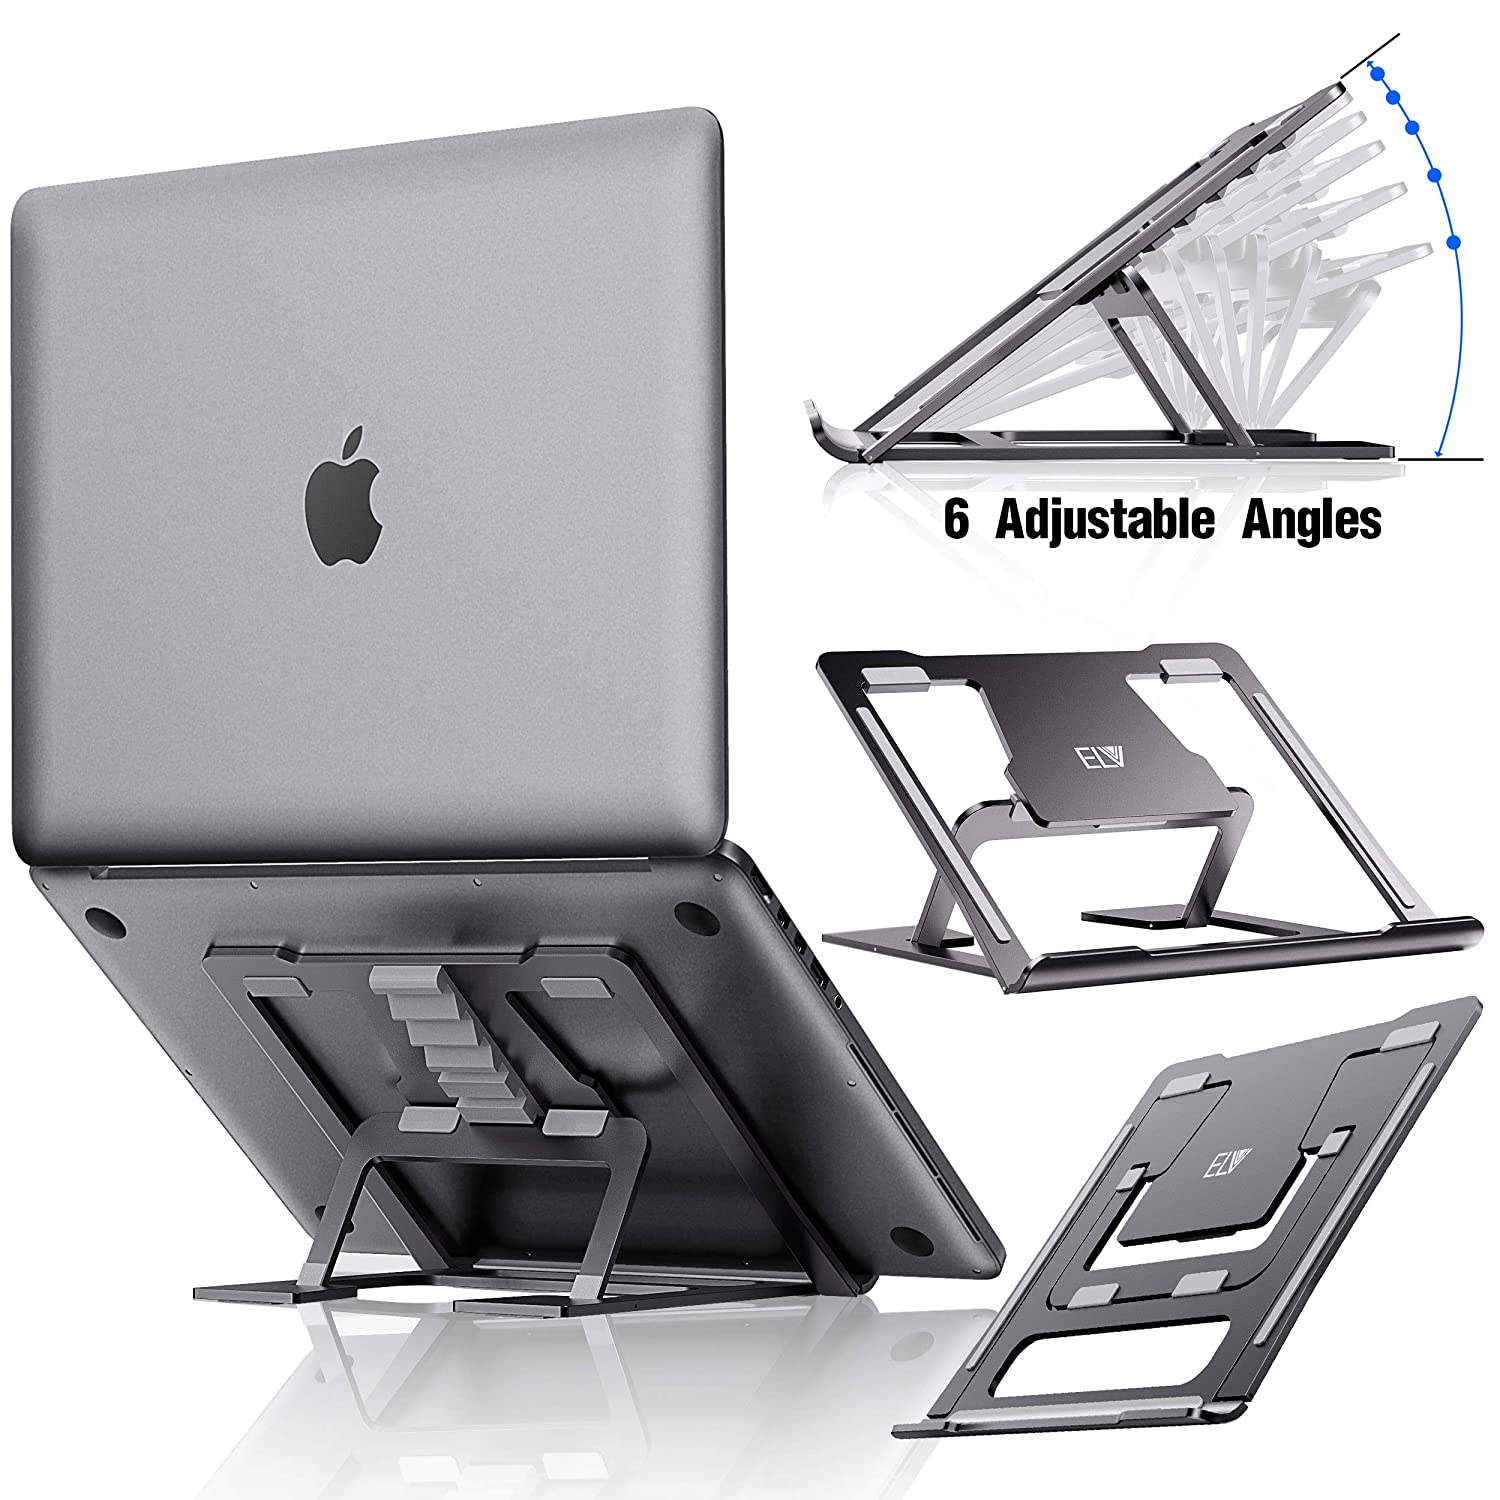 ELV Adjustable Laptop Stand, Compatible with Apple Mac MacBook Pro Air 10 to 15.6 Inch Notebook, Antislip Anti-Scratch Aluminum Ventilated Portable Ergonomic Desktop Holder Riser for Office Desk